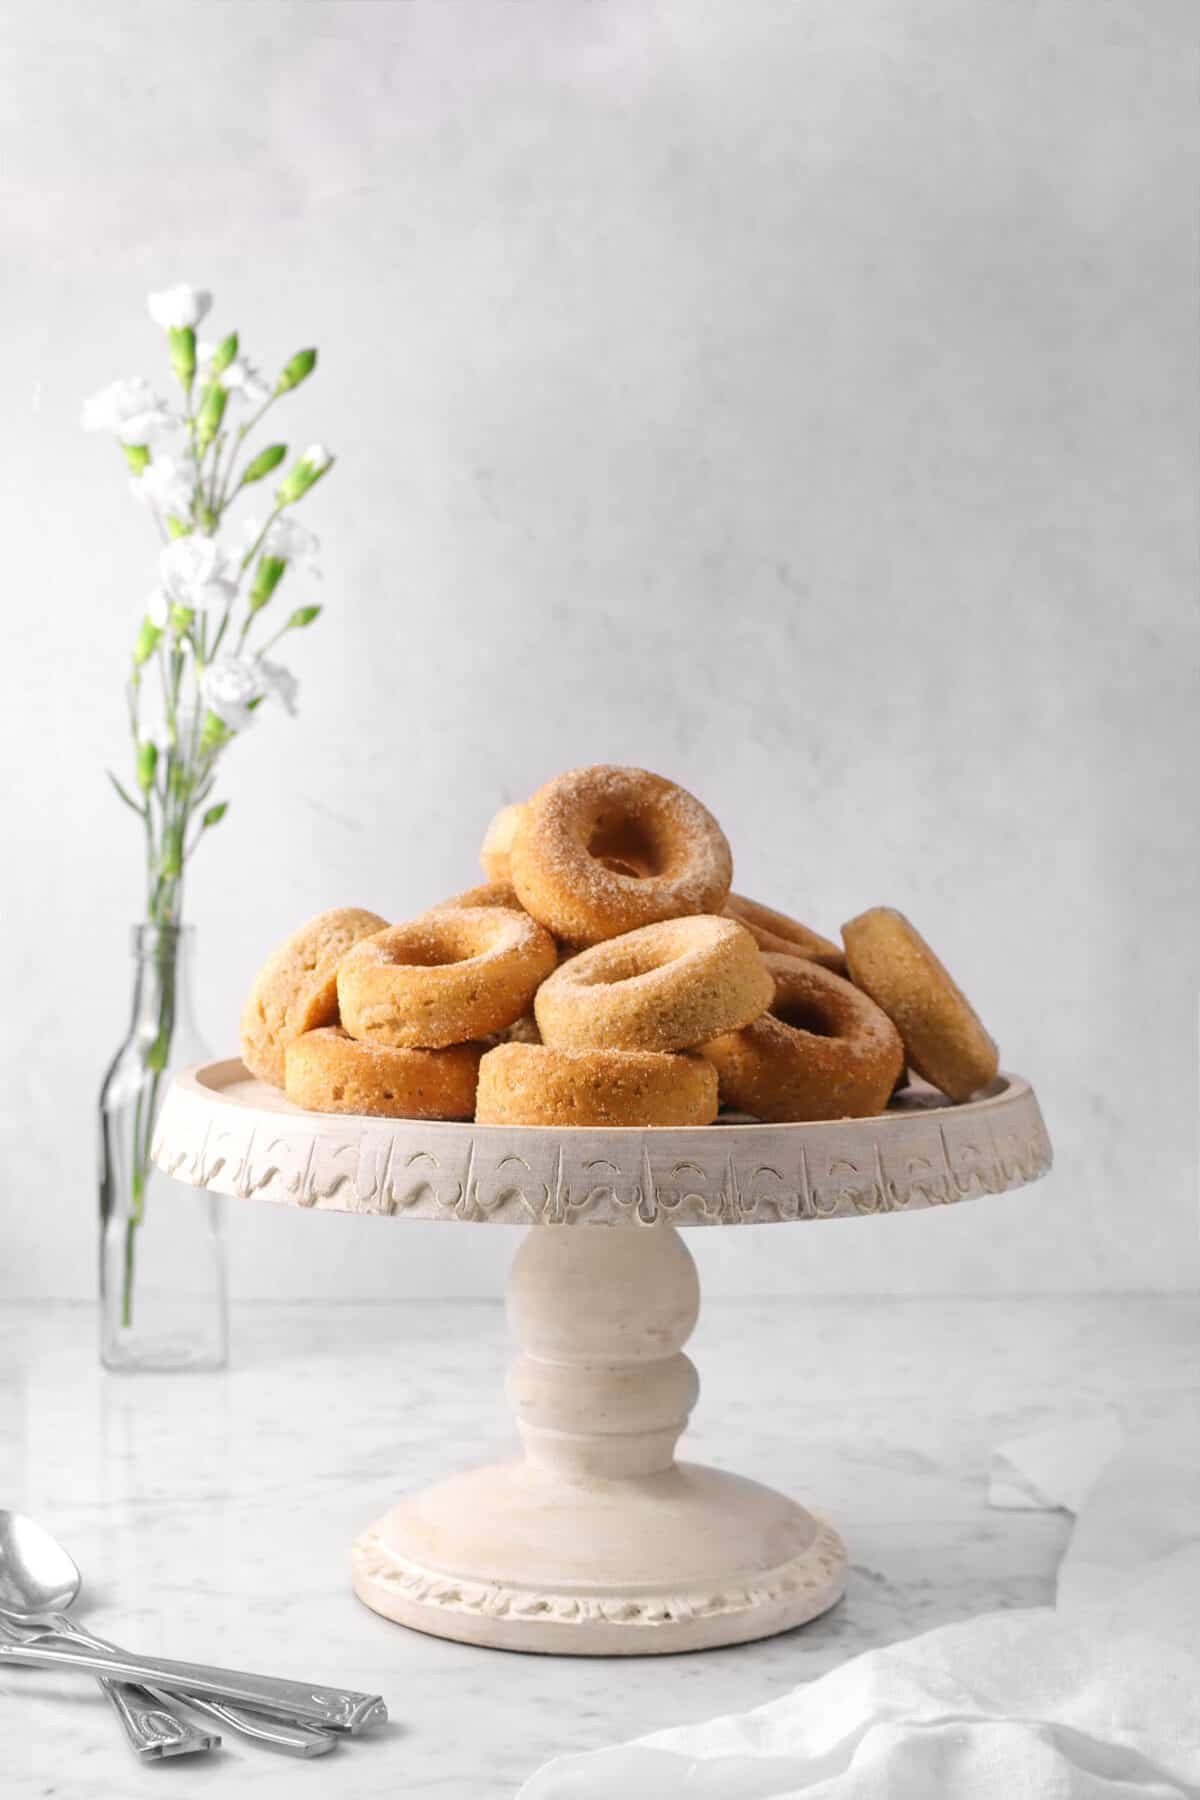 cinnamon donuts on a cake stand with flowers, white napkin, and silver utensils